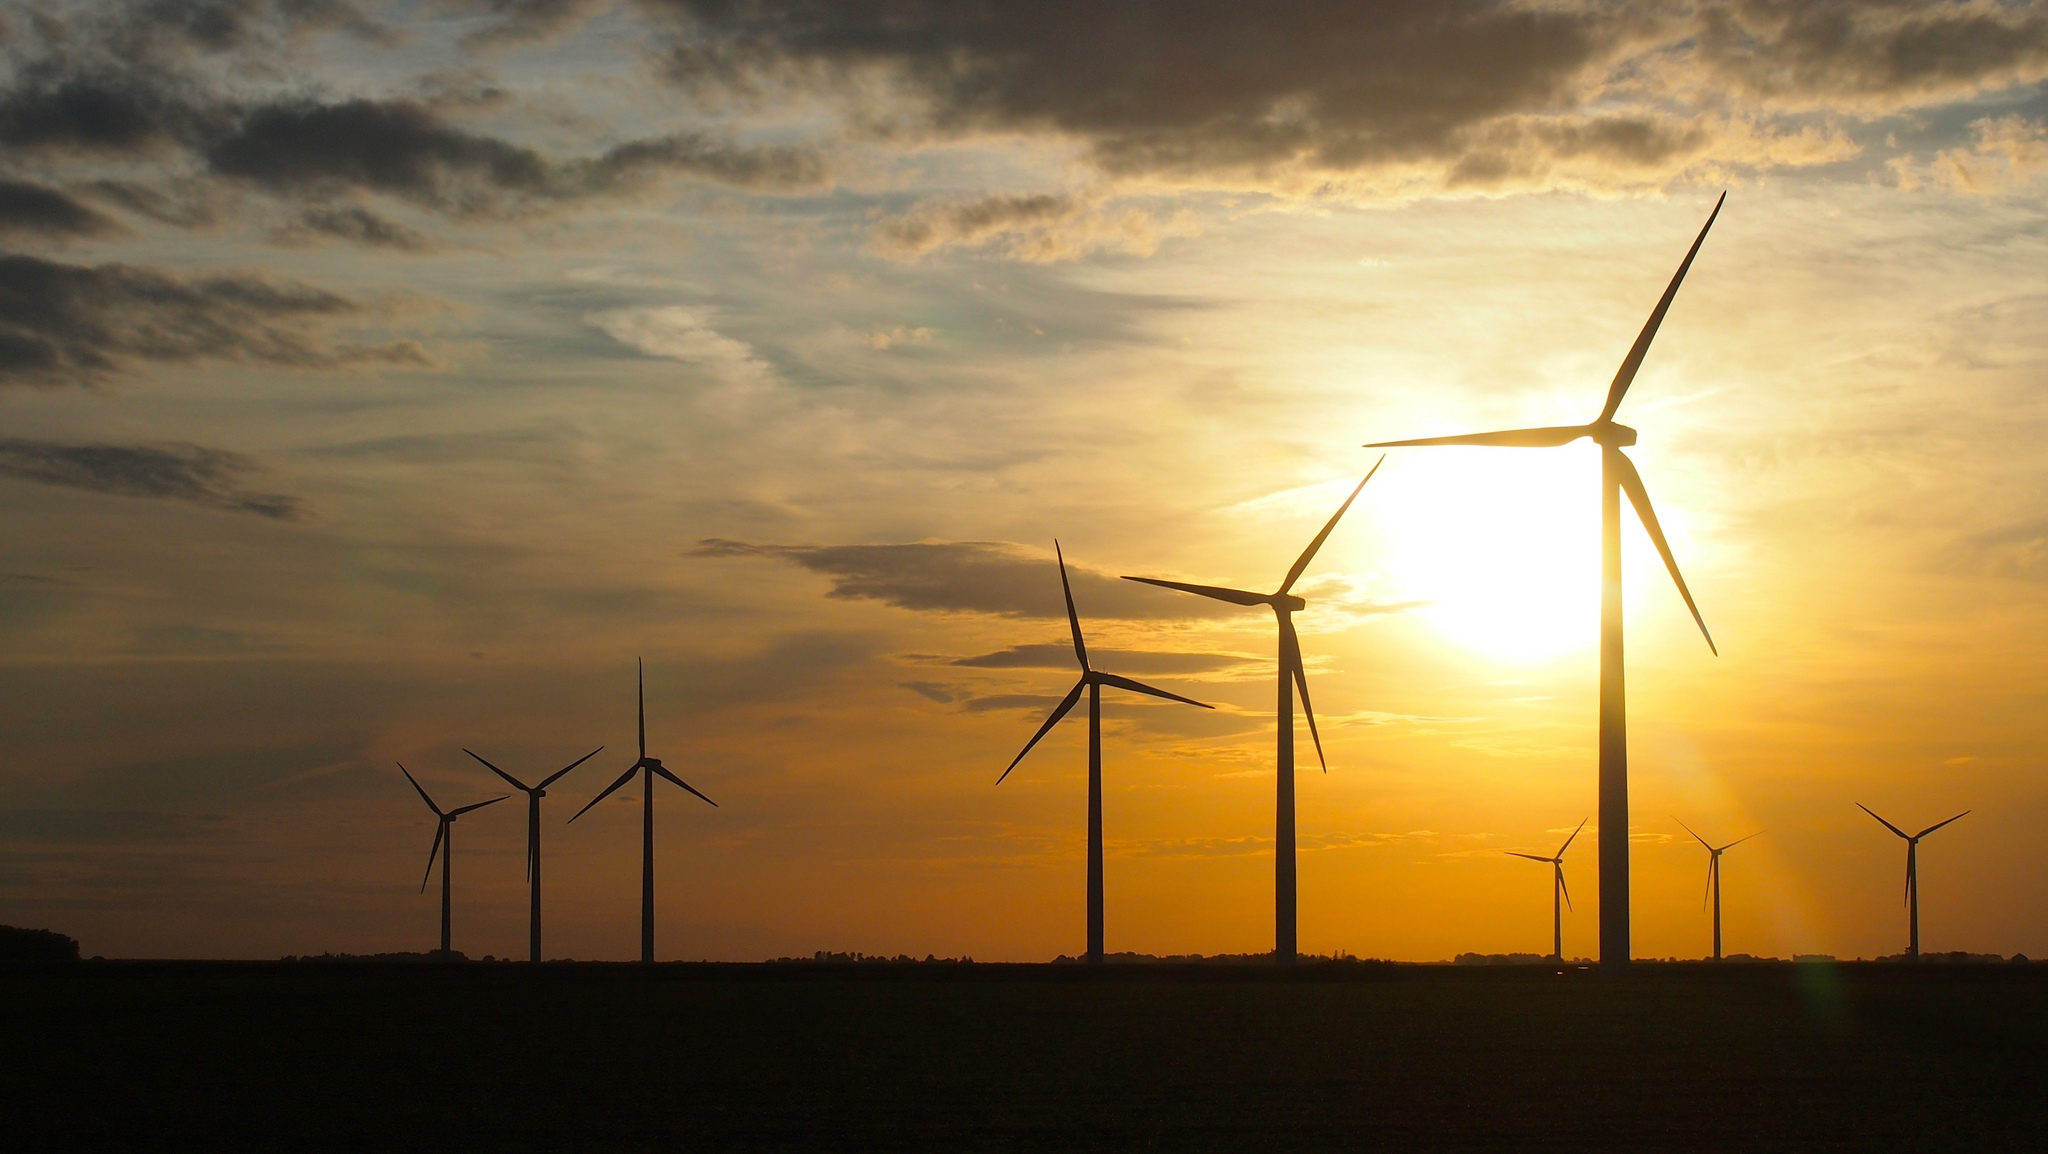 Iowa generated 27 percent of its electricity from wind energy last year which ranked highest in the country. (Samir Luther/Flickr)